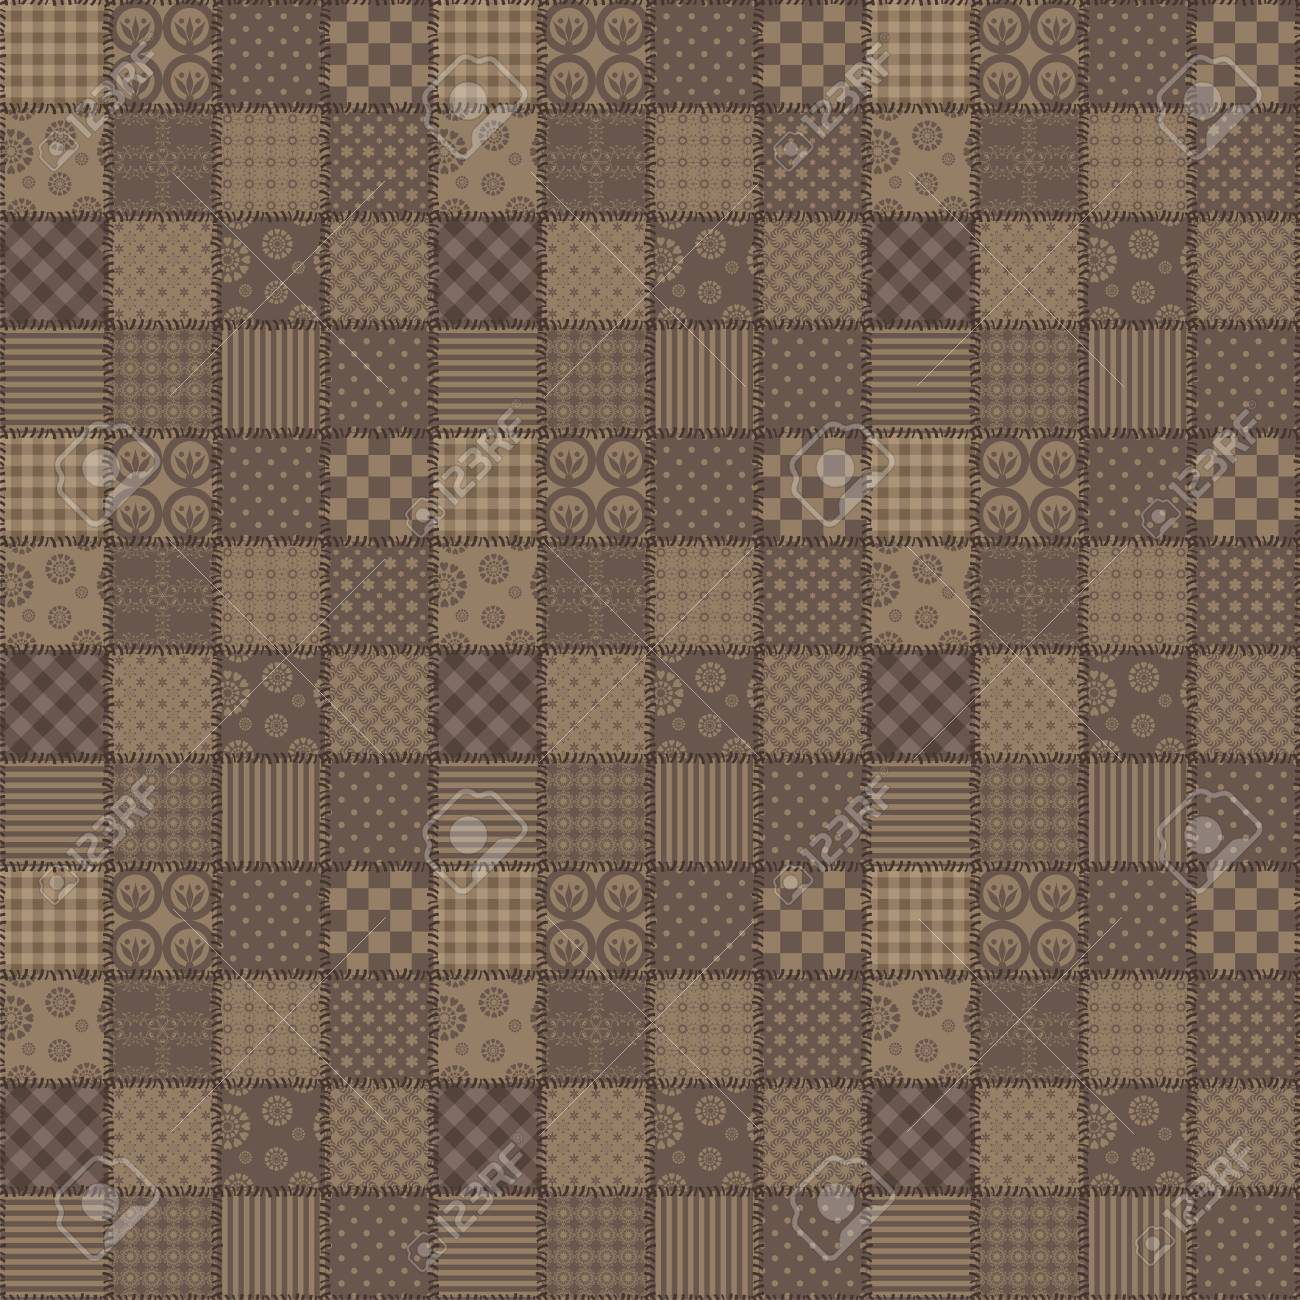 patchwork background with different patterns Stock Photo - 15983341